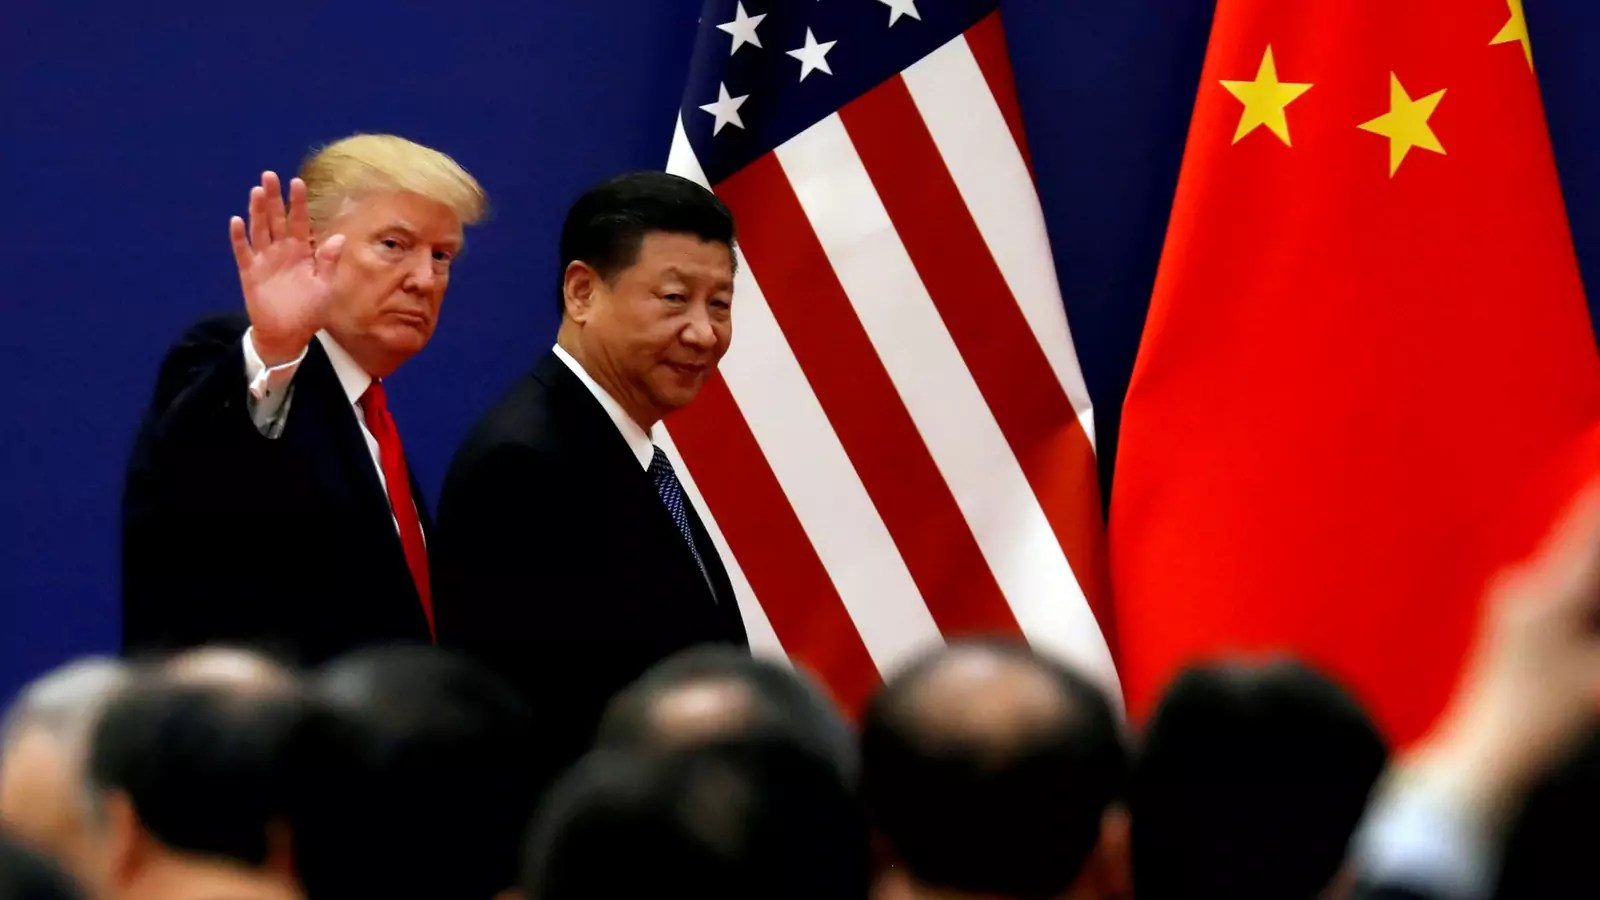 U.S. President Donald J. Trump and China's President Xi Jinping meet business leaders at the Great Hall of the People in Beijing, China, on November 9, 2017.